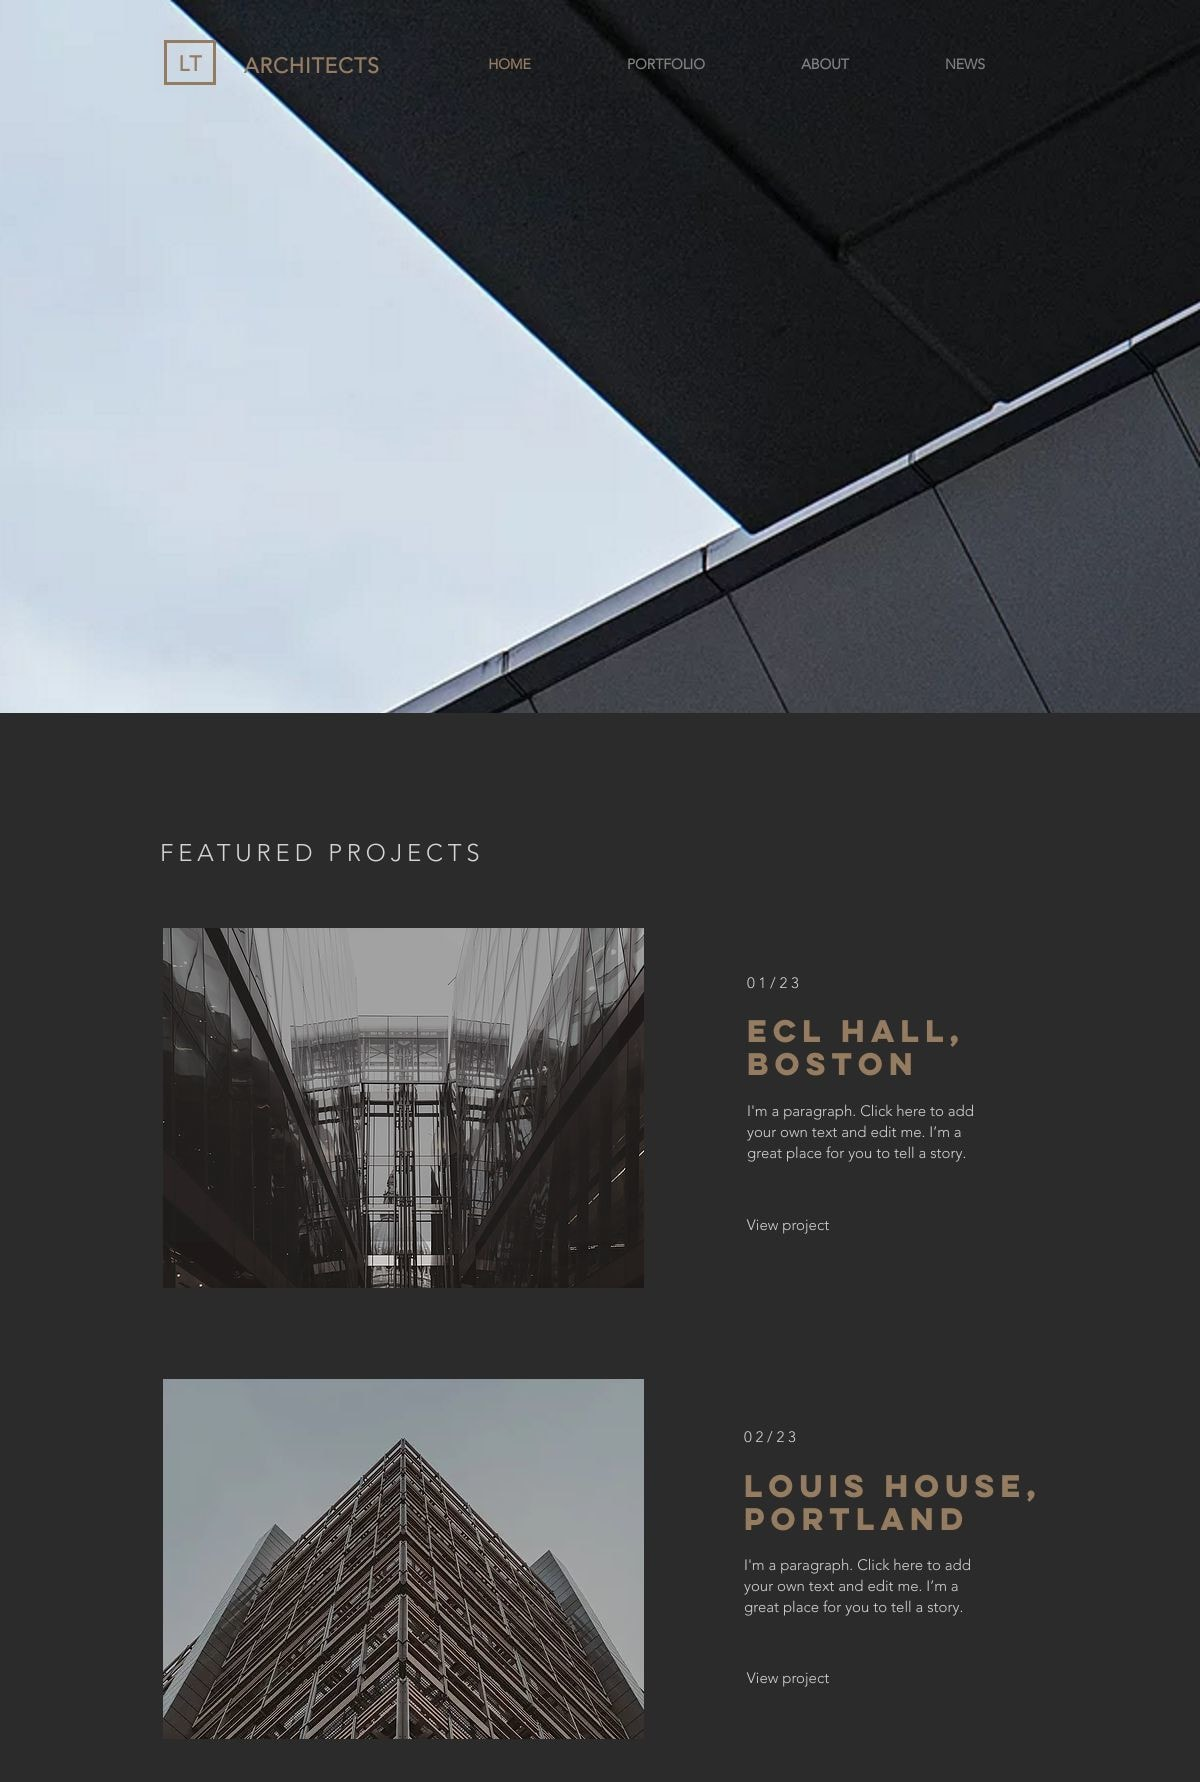 6 Best Wix Templates For Architect Websites-image1